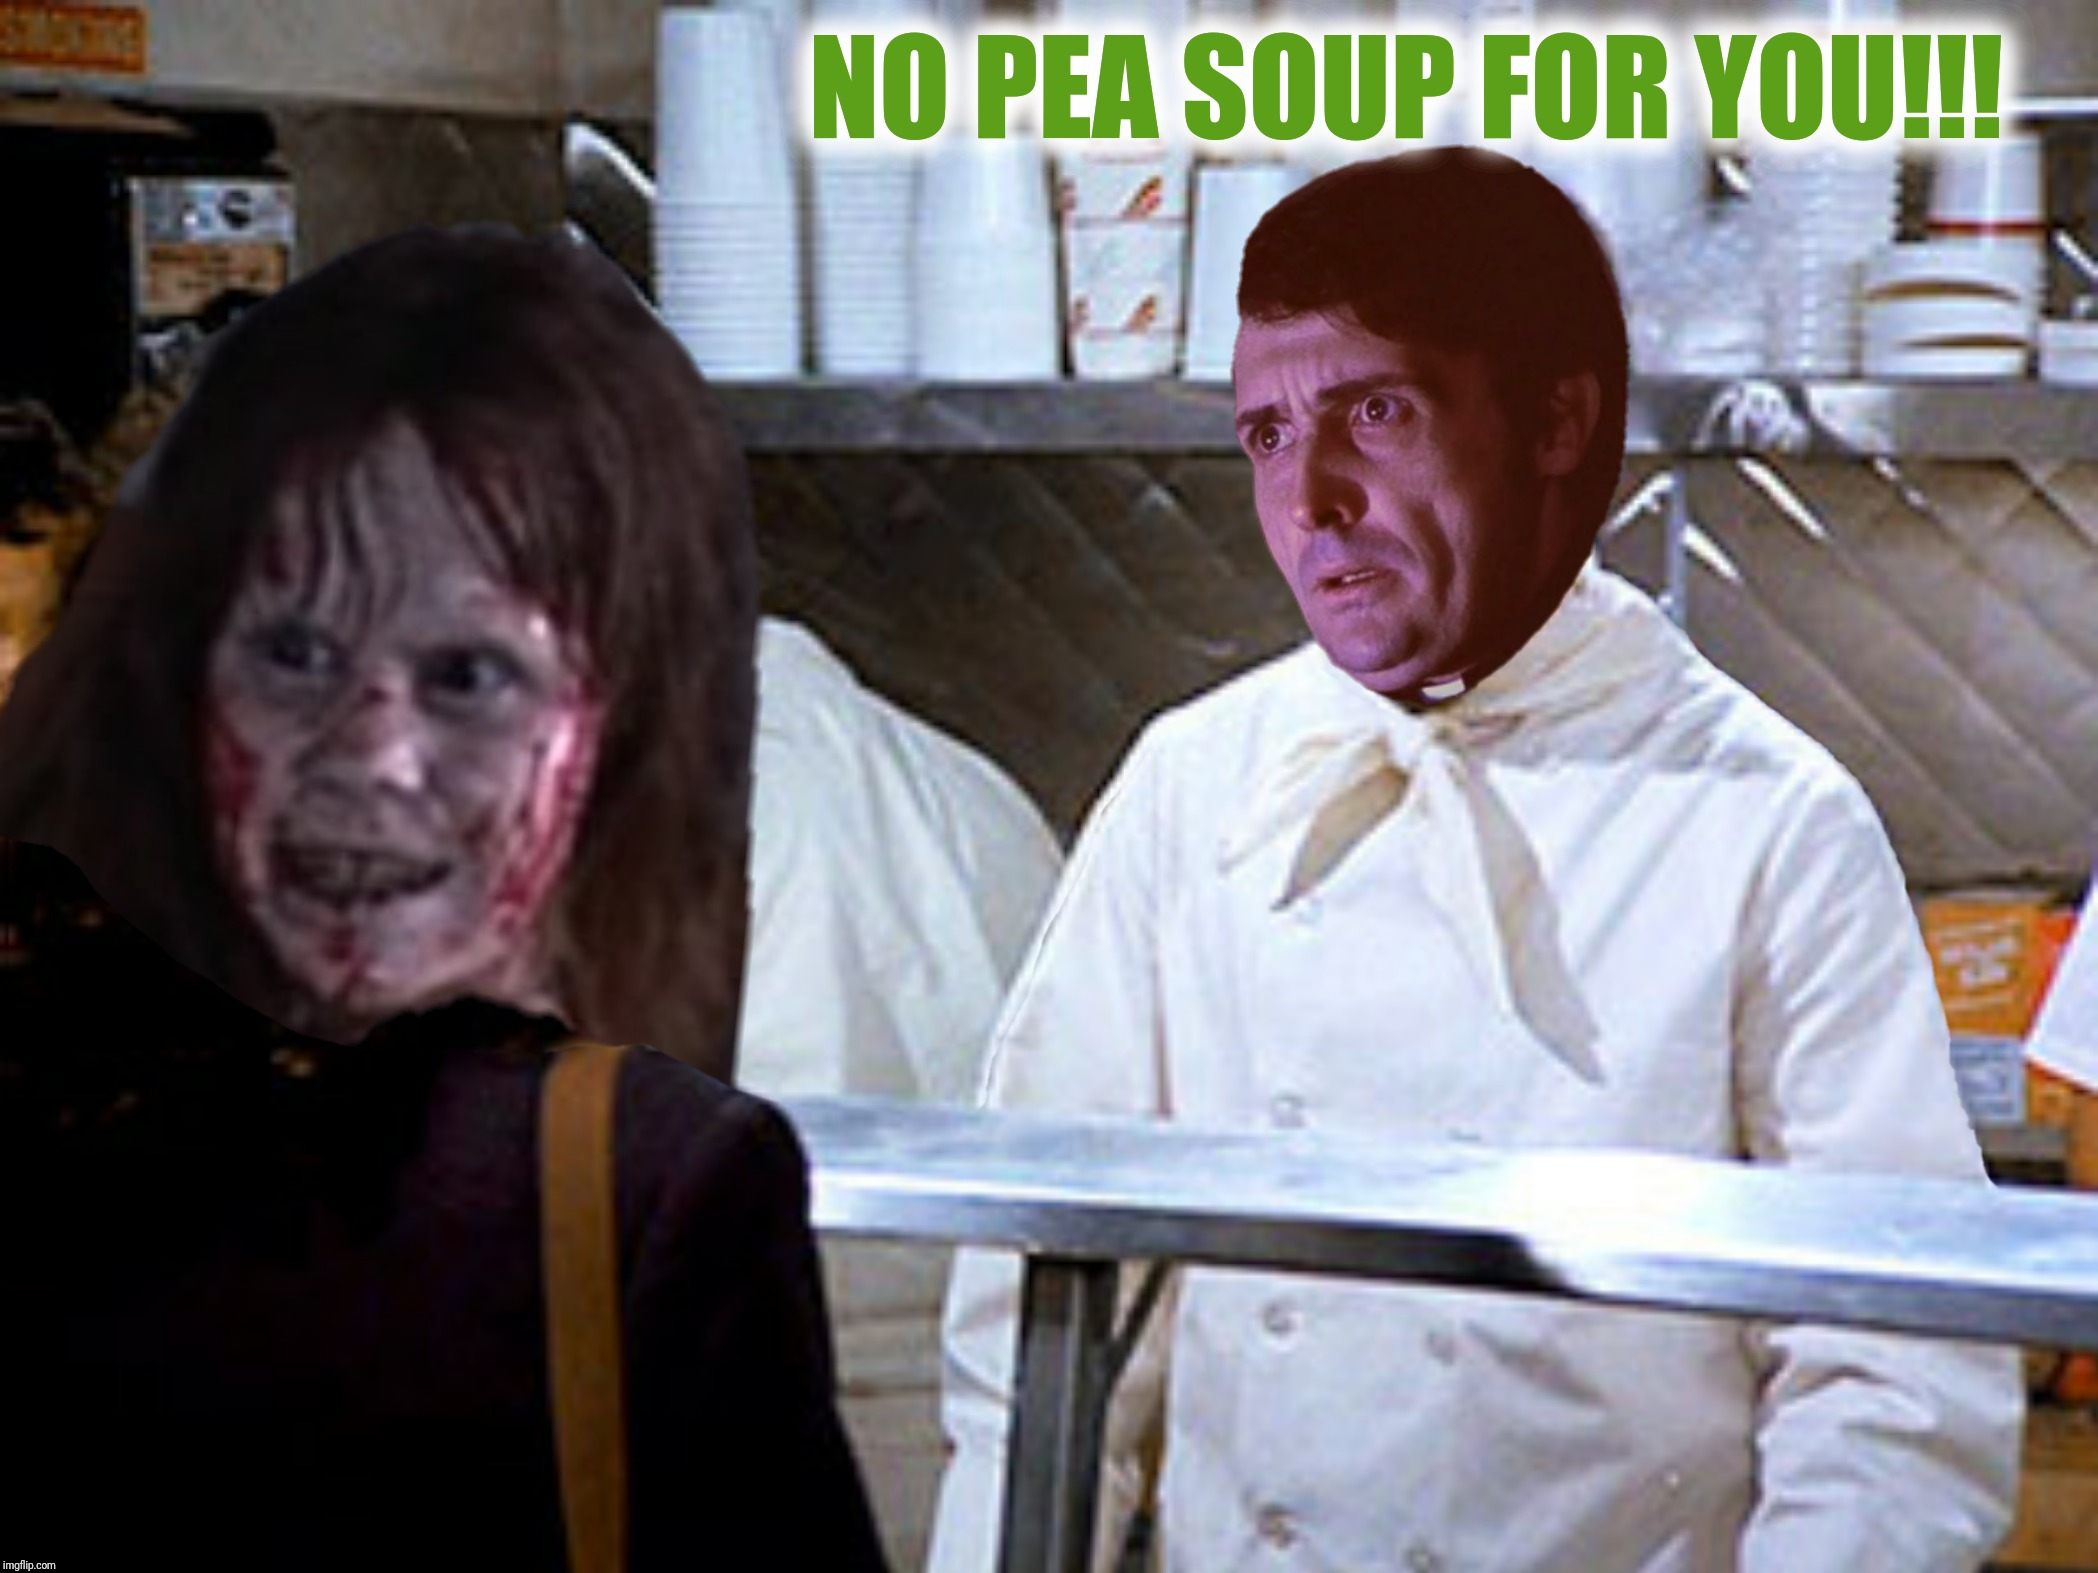 Bad Photoshop Sunday presents:  Could you swing your head back this way?! | NO PEA SOUP FOR YOU!!! | image tagged in bad photoshop sunday,the exorcist,soup nazi,priest,regan macniel | made w/ Imgflip meme maker